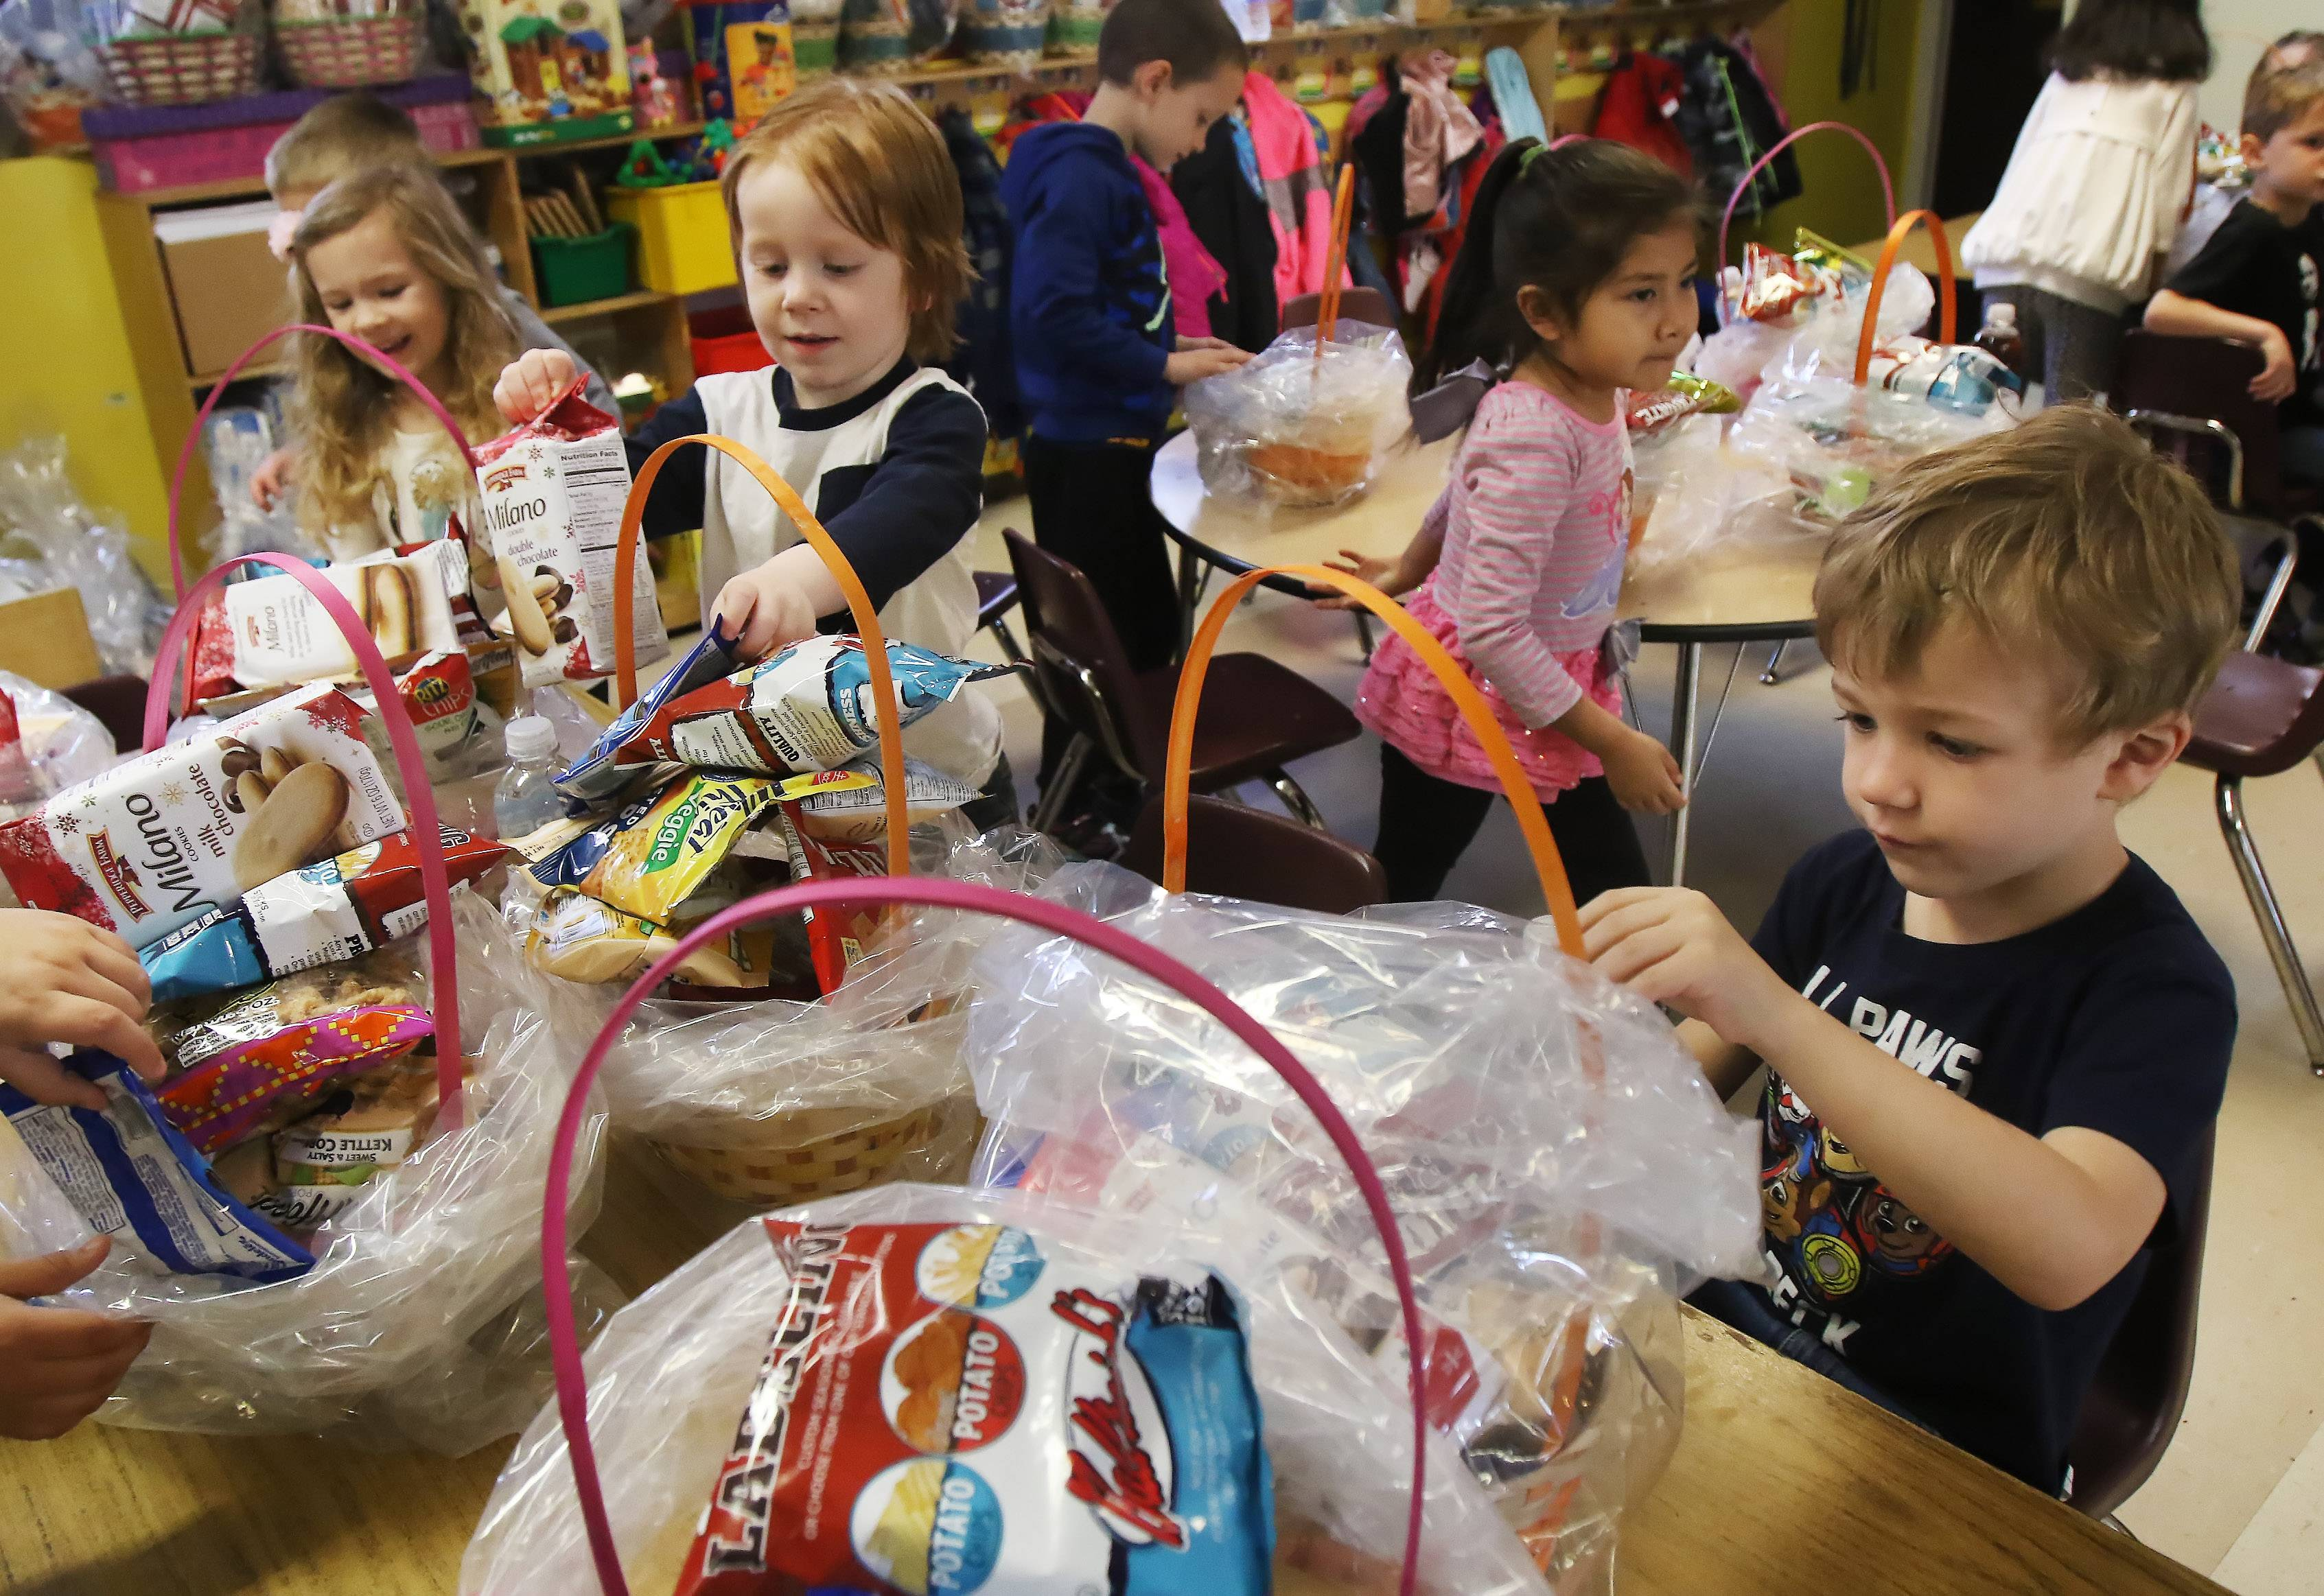 Preschoolers Liam Holland, 4, of Grayslake, right, and Radley Schackmuth, 4, of Lake Villa join classmates as they make Easter baskets Wednesday at the Lindenhurst Early Childhood Center.